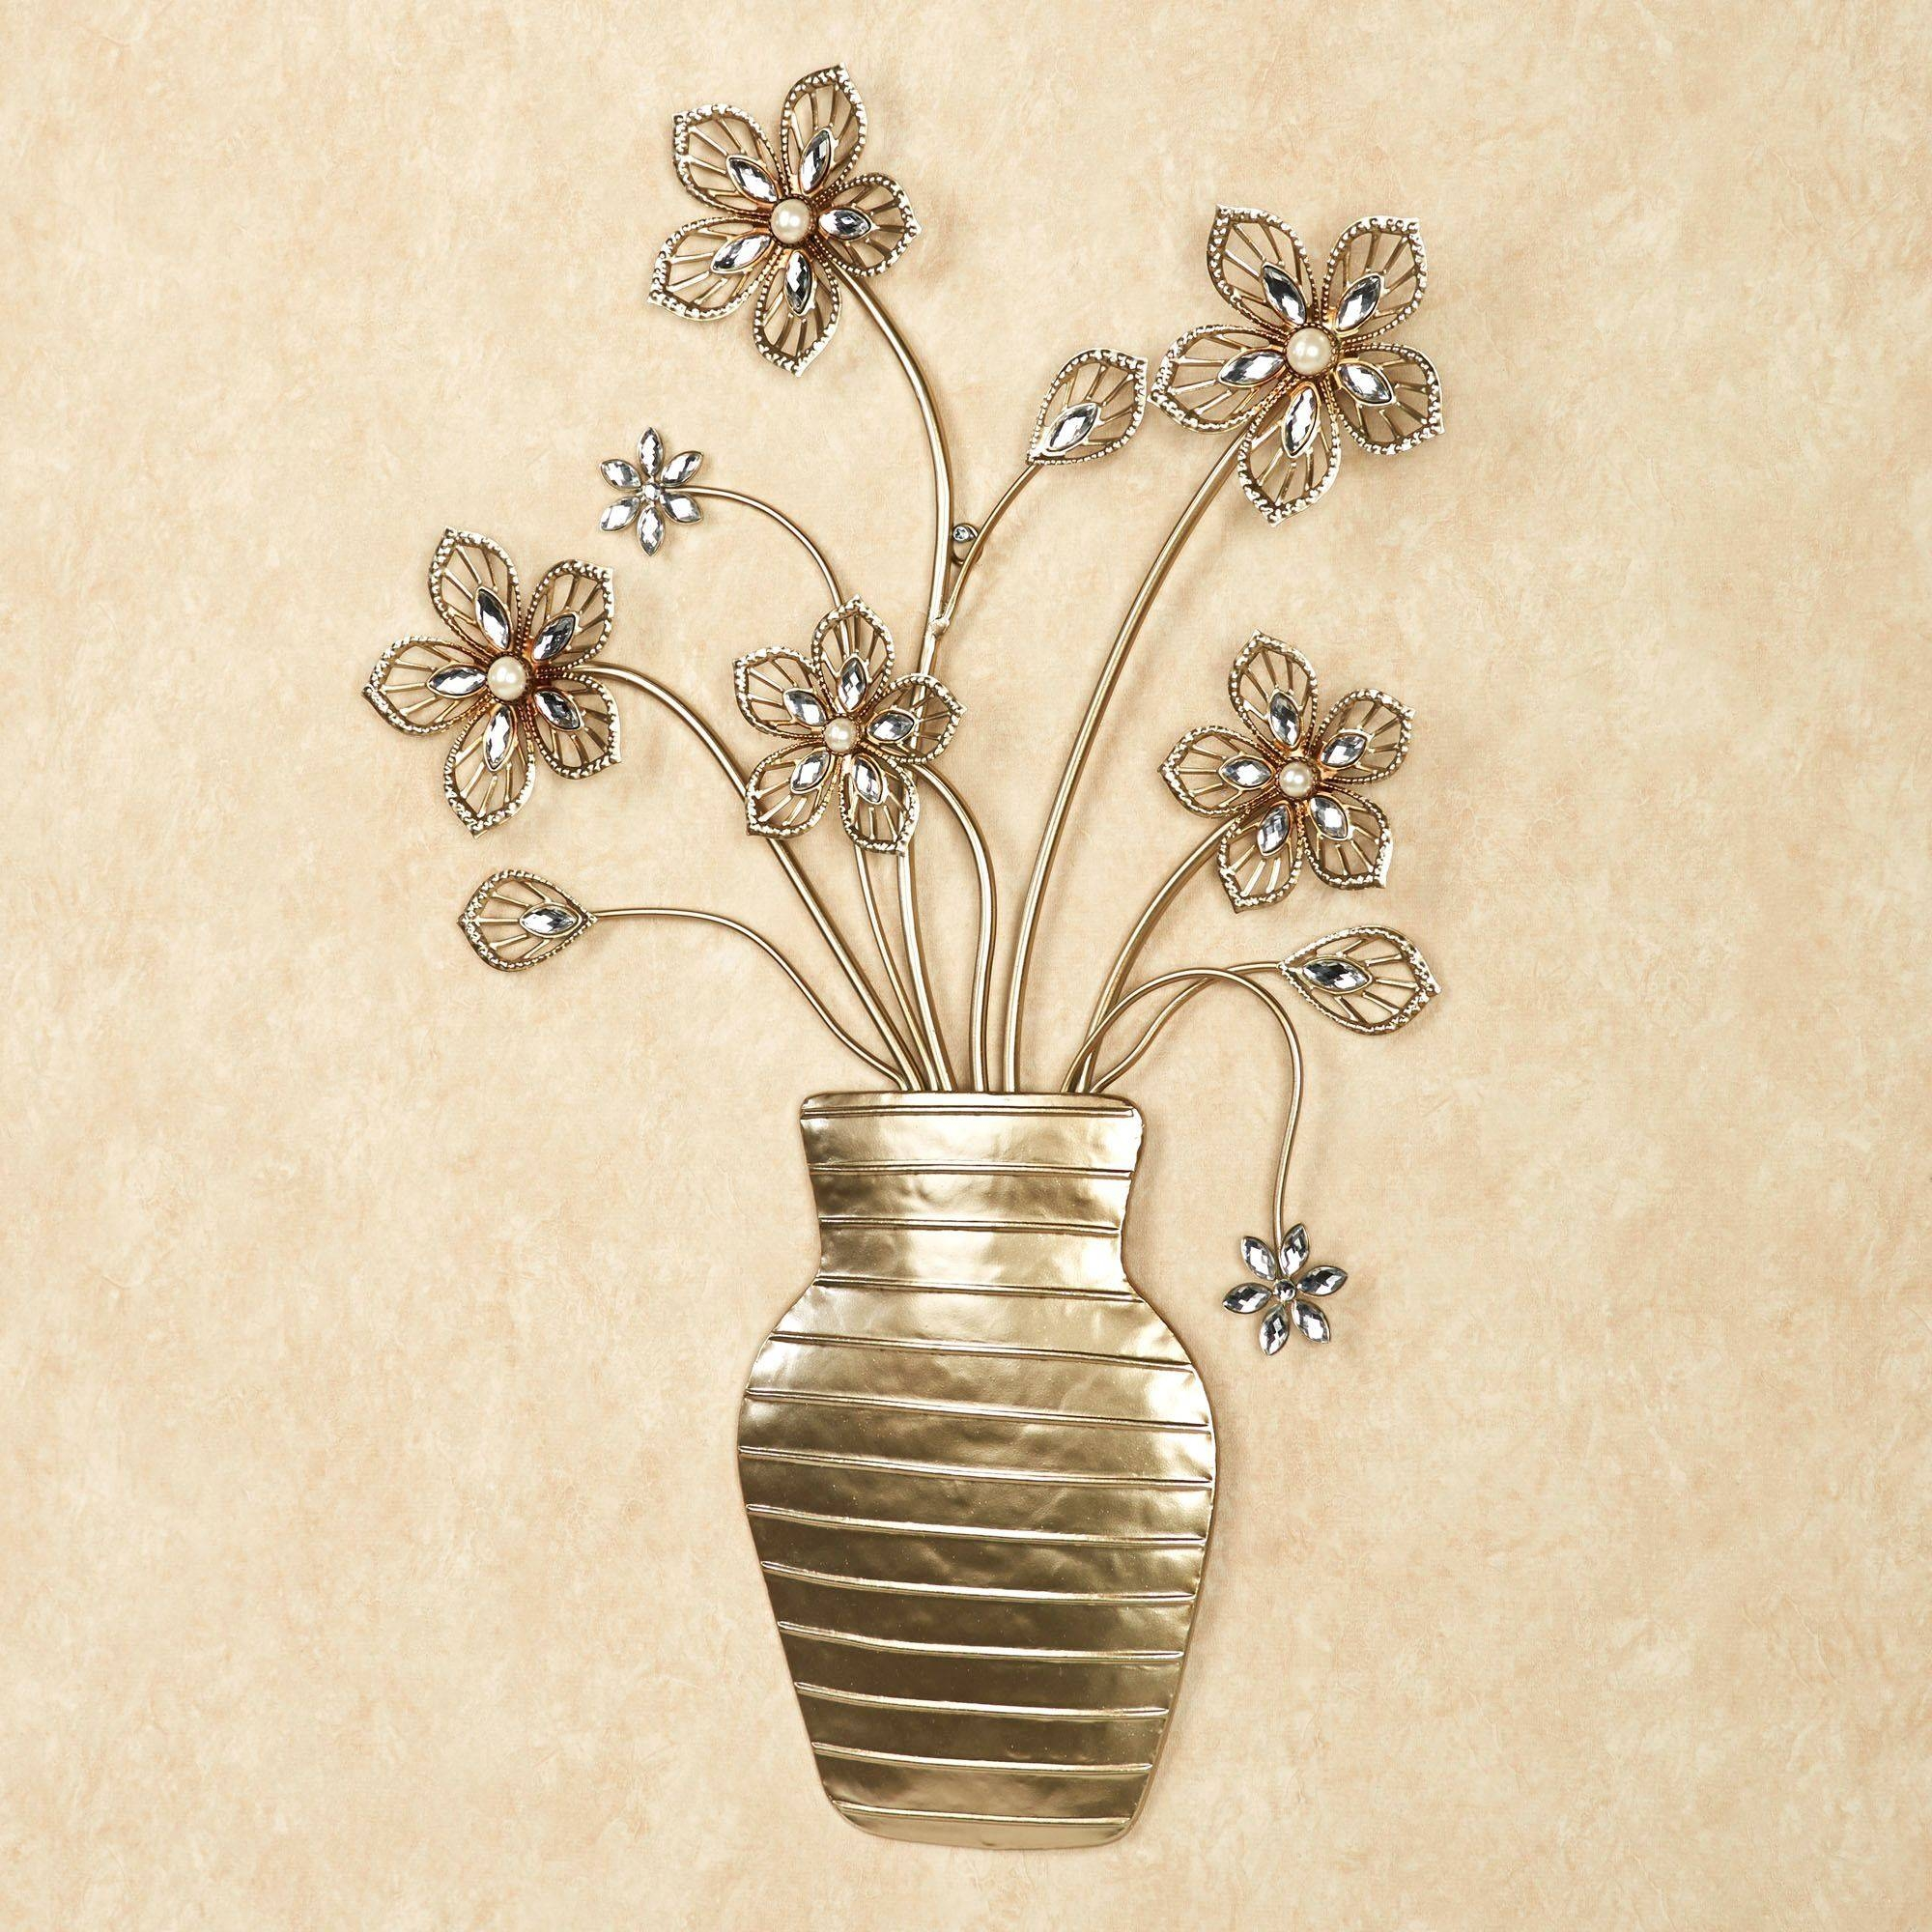 Rosianna Floral Vase Metal Wall Art With Regard To Most Recent Floral Metal Wall Art (View 17 of 20)